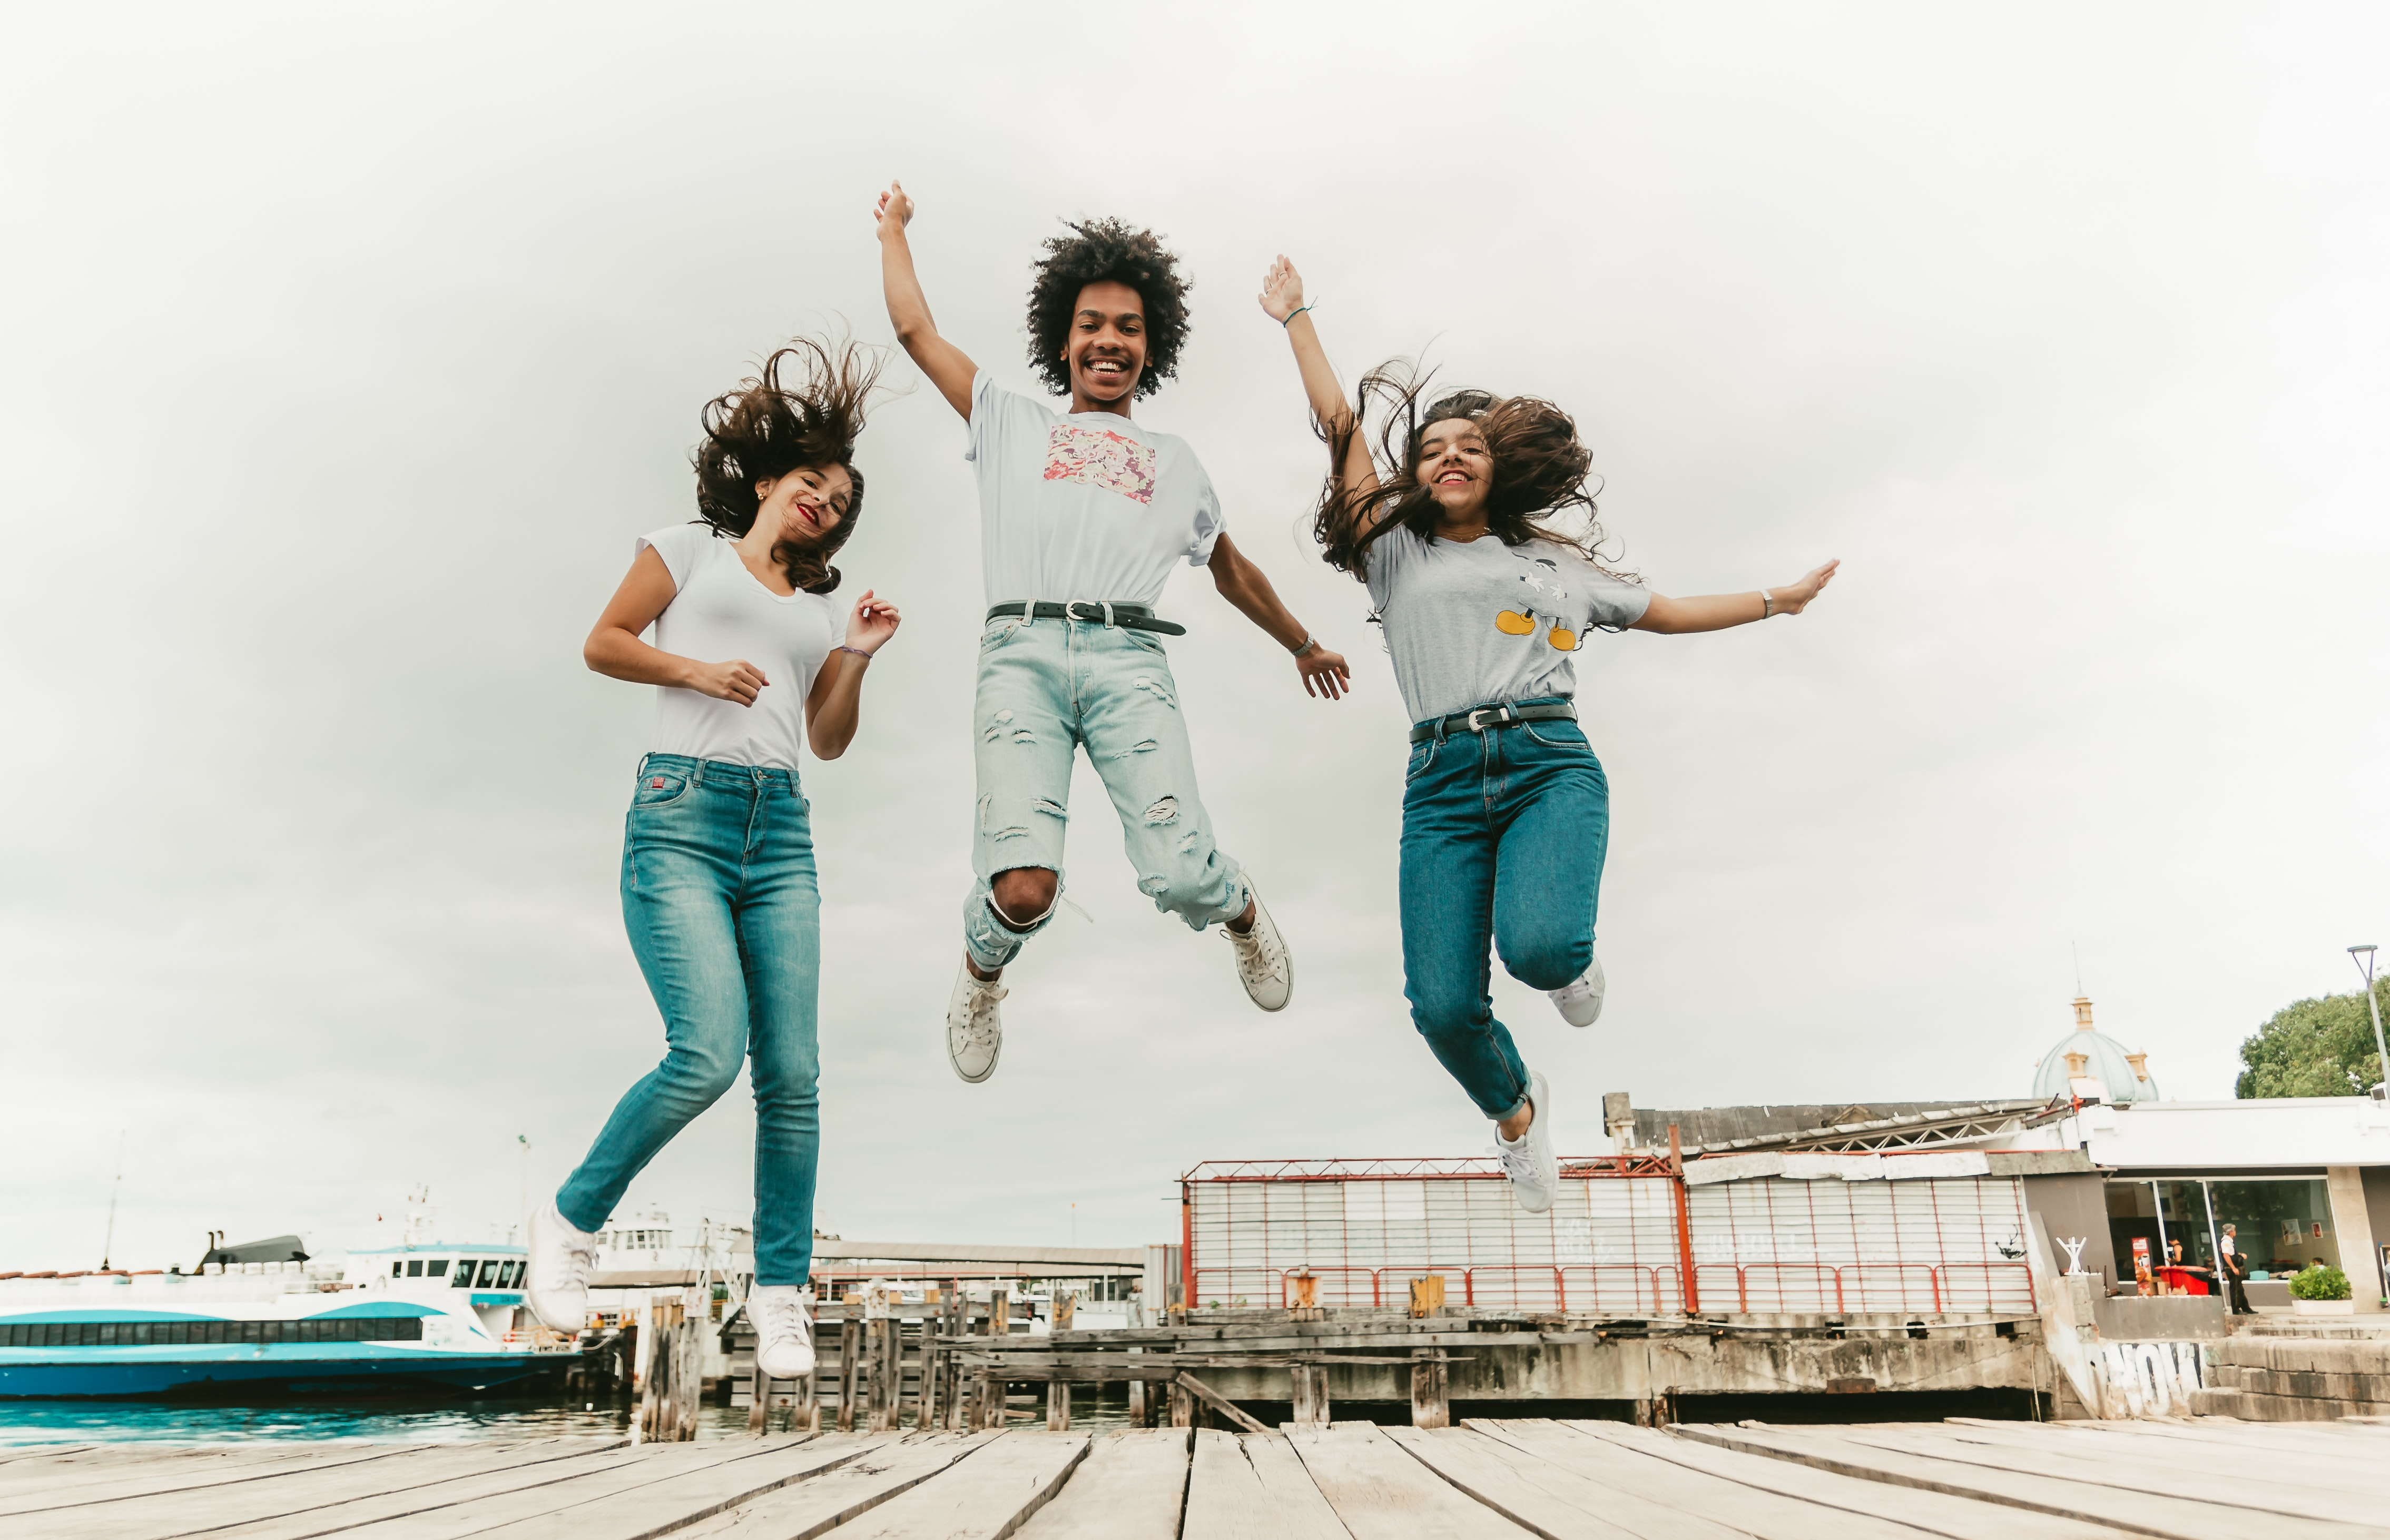 two women and one man jumping at daytime